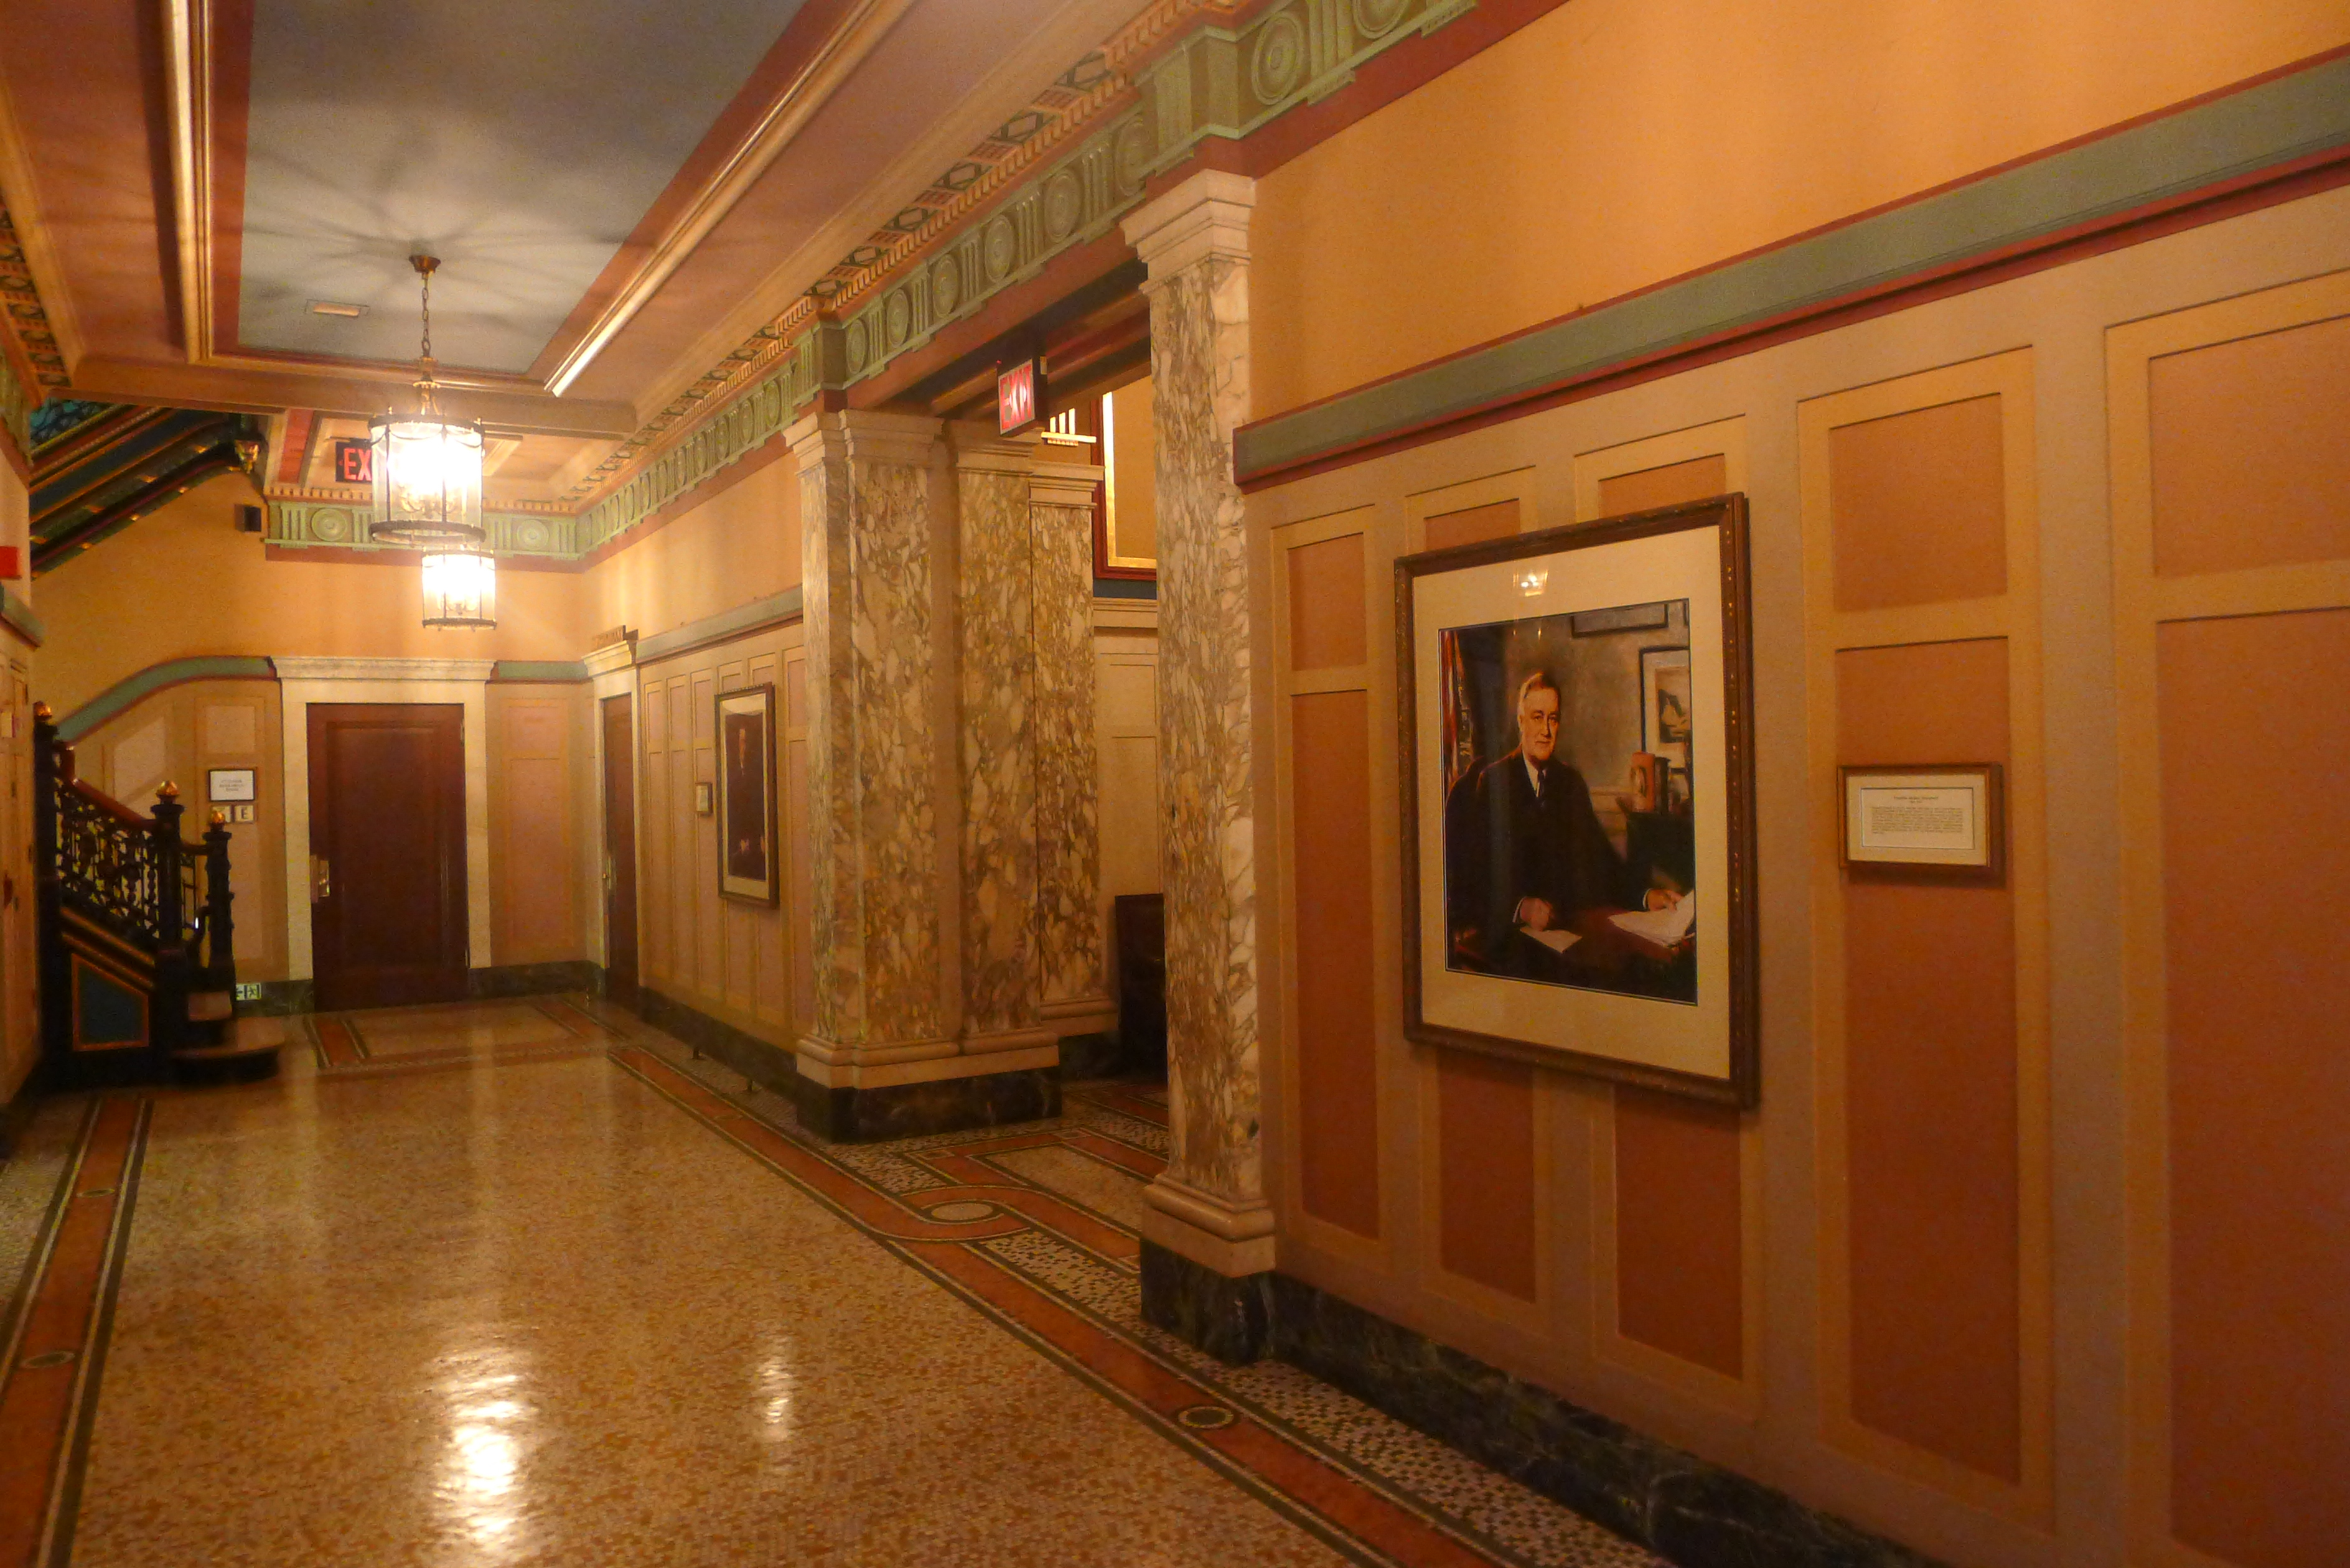 The hallways which lead to the 13 lodges